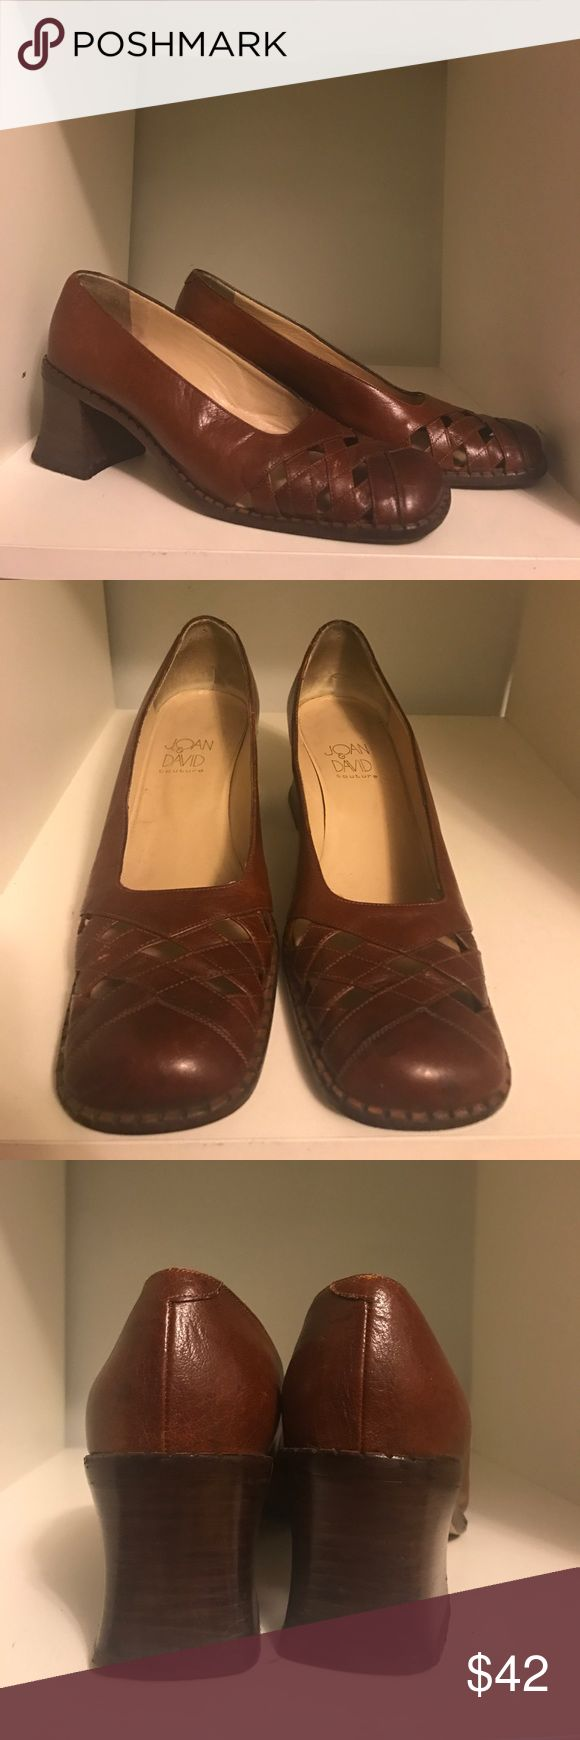 Joan & David couture leather stack heel shoes Joan & David couture vintage brown leather, stack heel, cutout square toe shoes. AMAZing vintage condition. Practically no wear. Only a bit of dirt and scuffs to bottom of foot bed. Handmade in Italy. Super rare!!! Joan & David Shoes